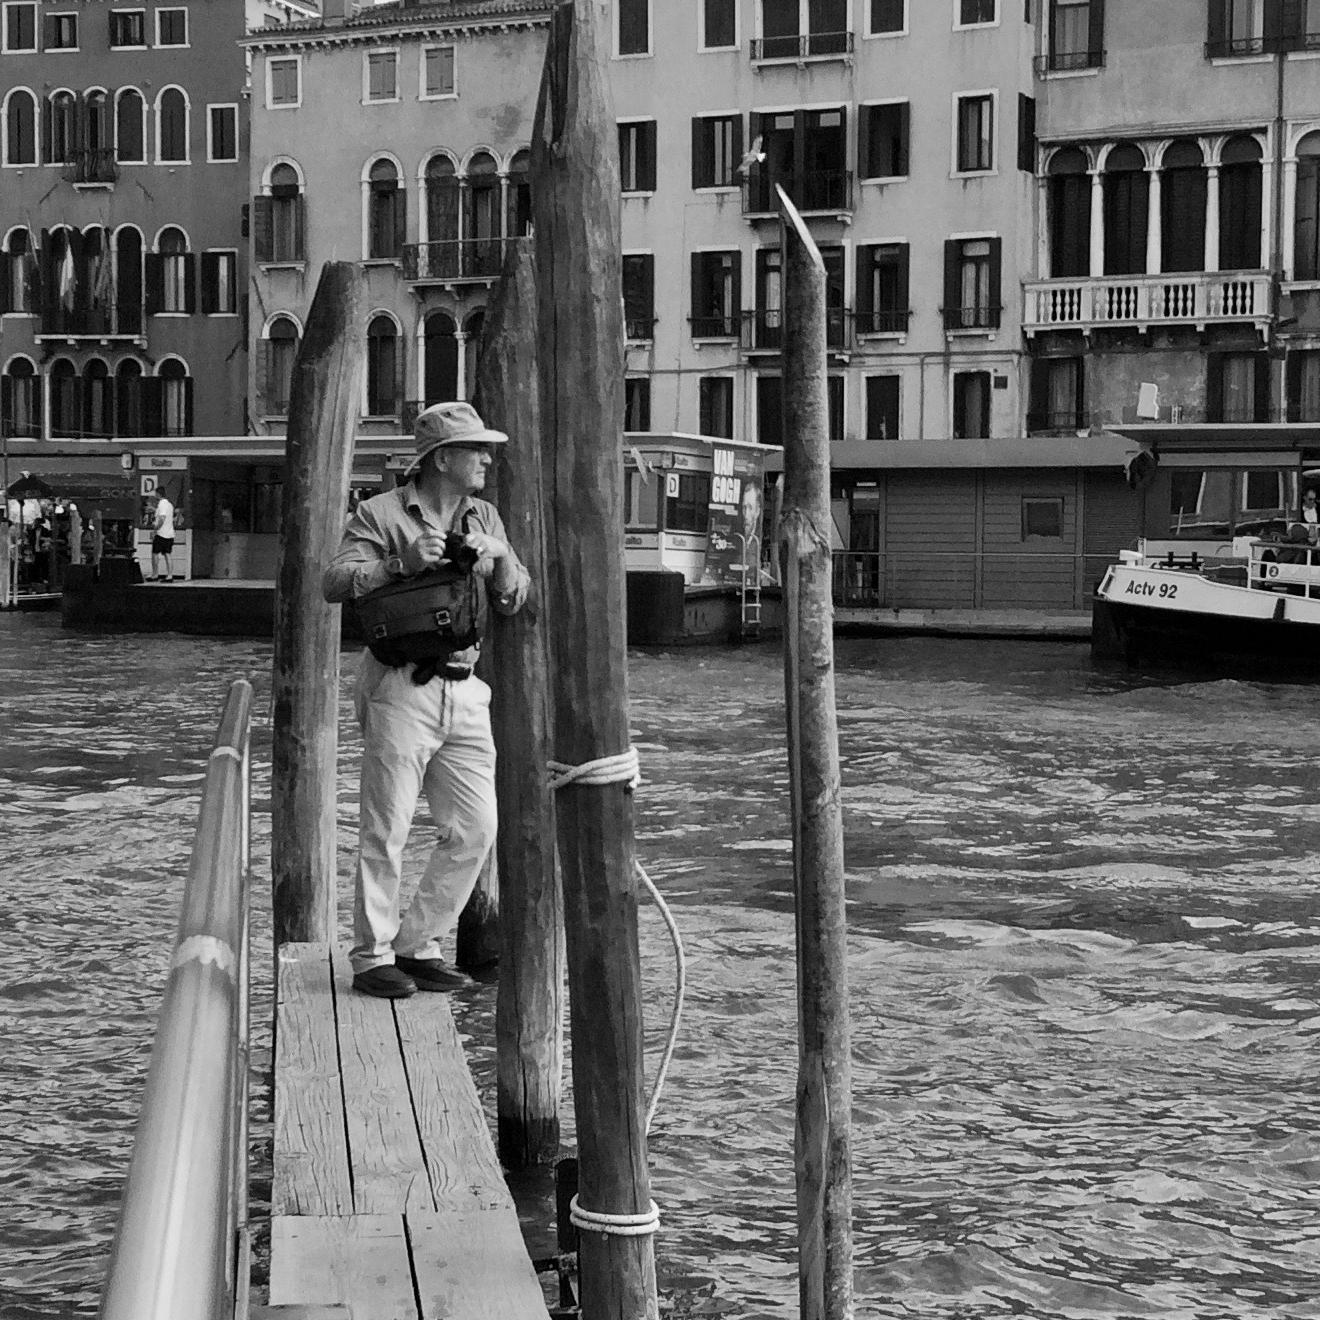 On a pier on the Grand Canal